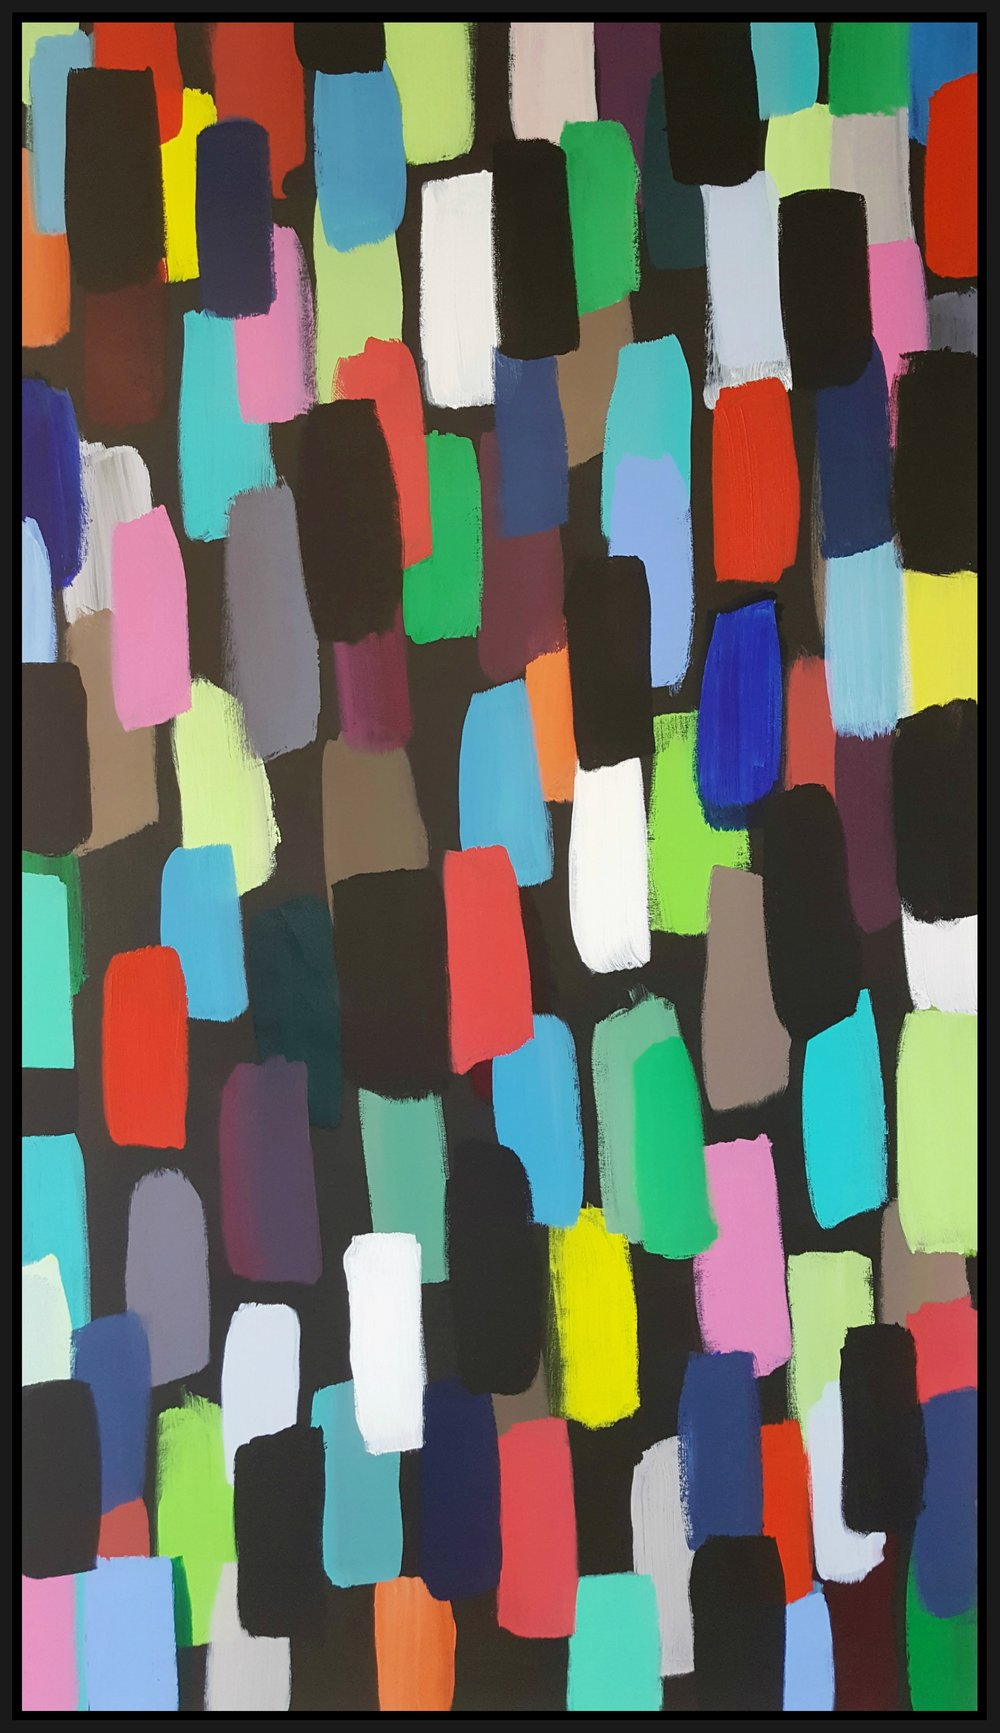 "Jelly Beans #5, 2016, acrylic on canvas, 84"" x 48"" (213.4 x 121.9 cm)"